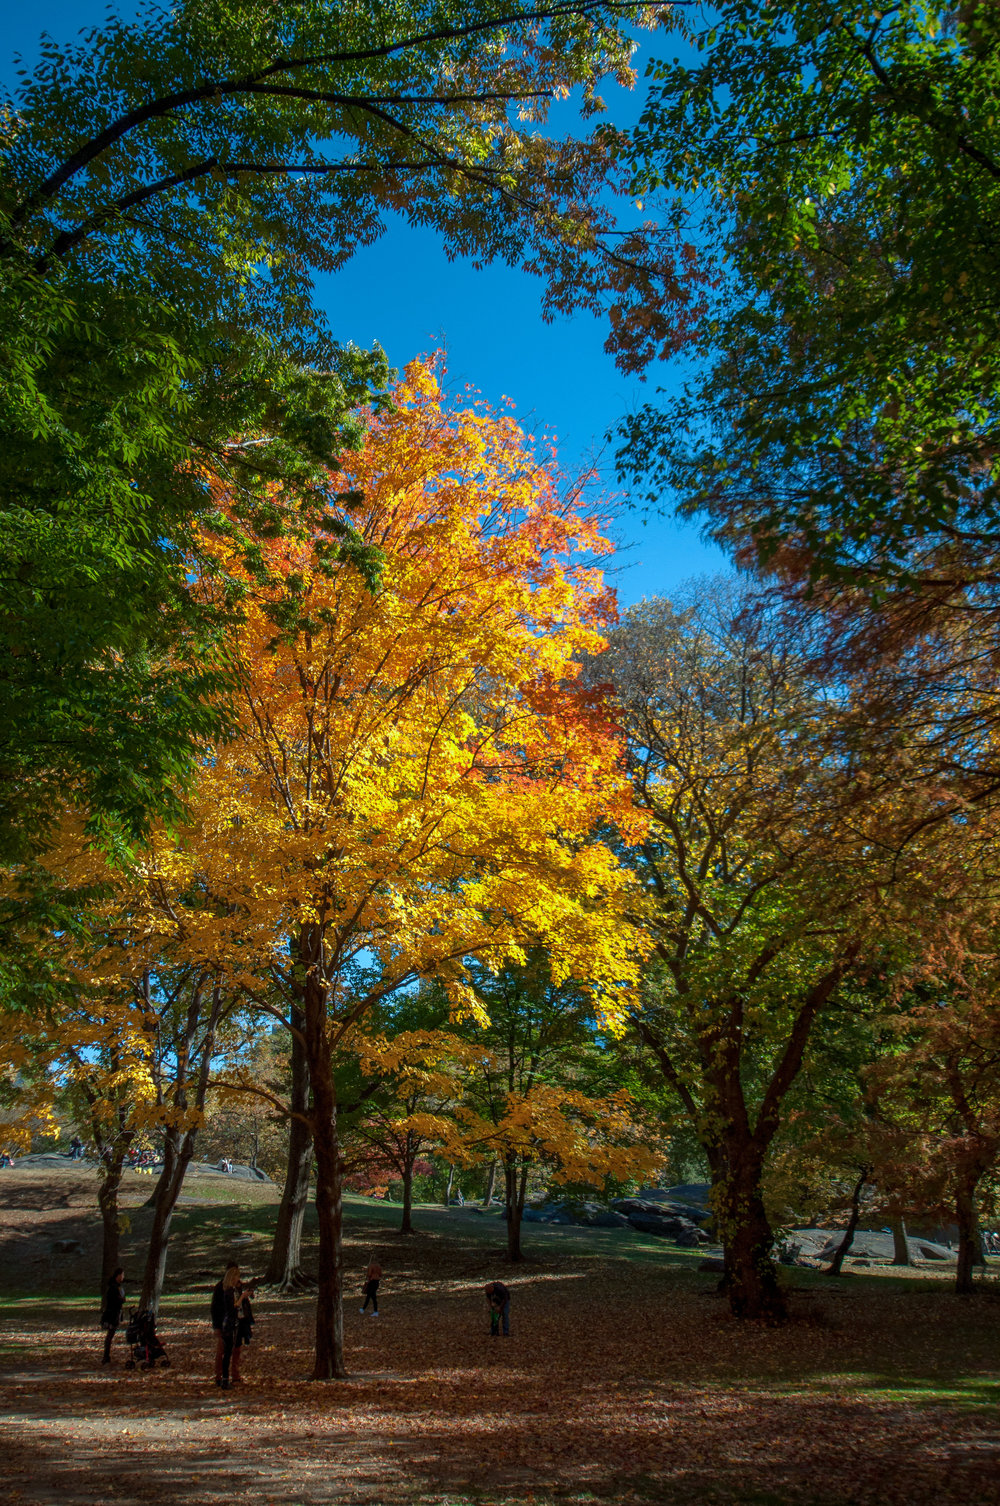 Whilst exploring Central Park, NY a few years ago this stunning sight appeared before our eyes - I just loved how the light was coming through the trees lighting up this beautiful, vibrant tree.